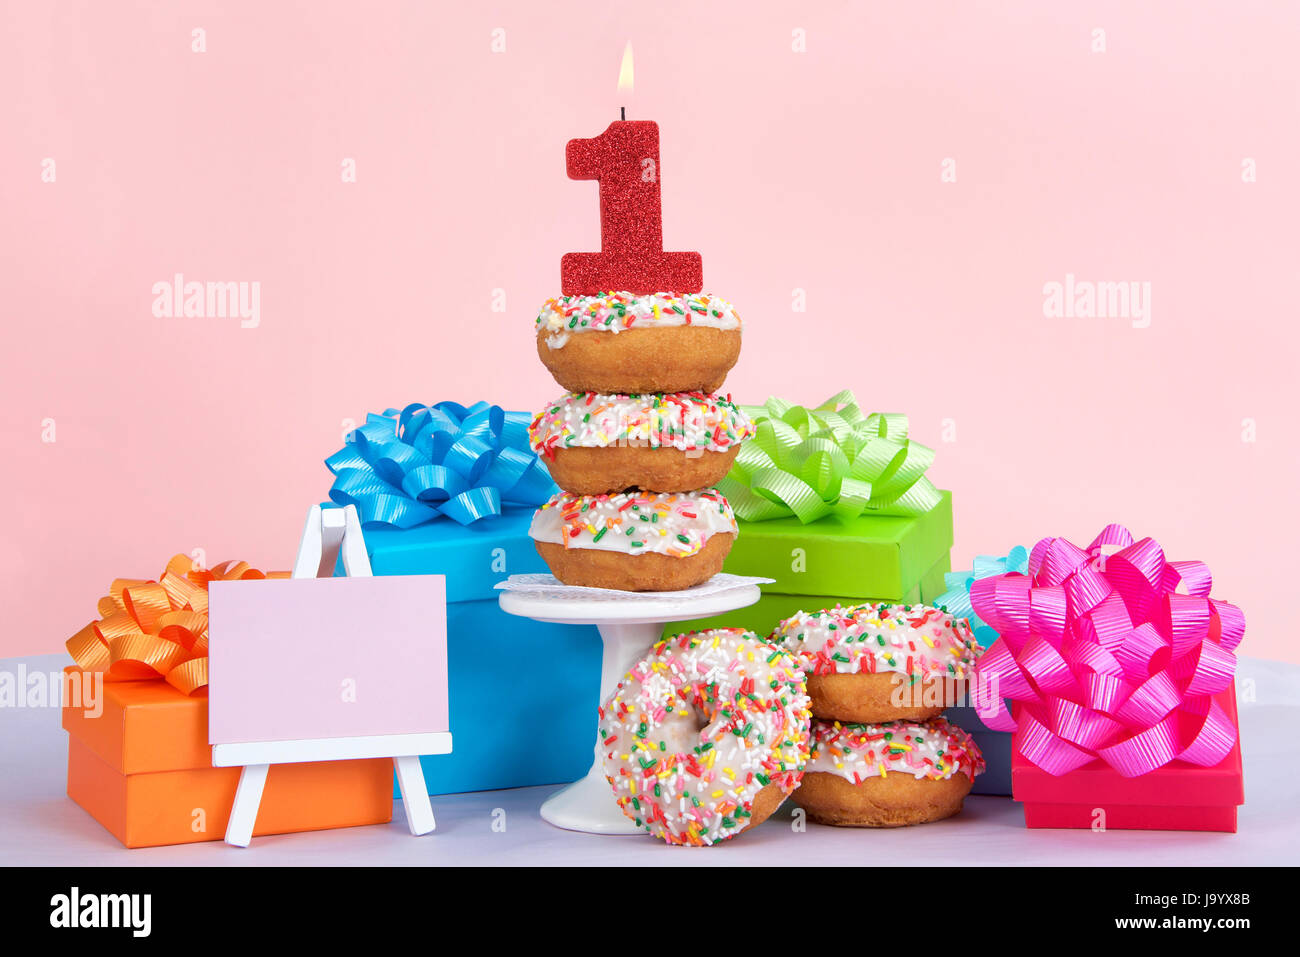 Cake Donuts With White Frosting And Colorful Sprinkles Stacked On Around A Small Pedestal Surrounded By Birthday Presents Number 1 Candle Burning